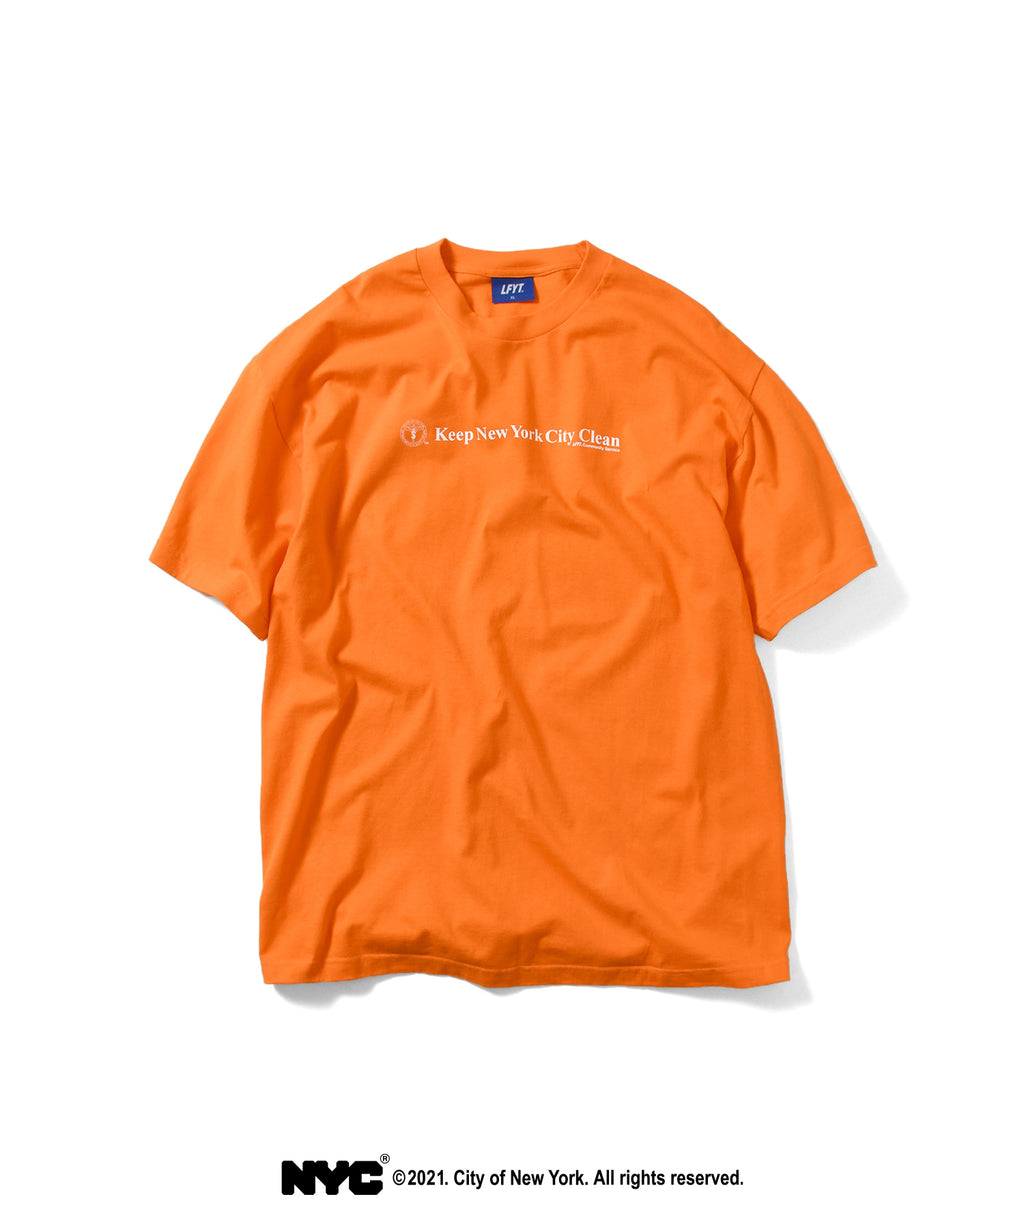 LFYT X DSNY COMMUNITY SERVICES TEE LS210103 ORANGE